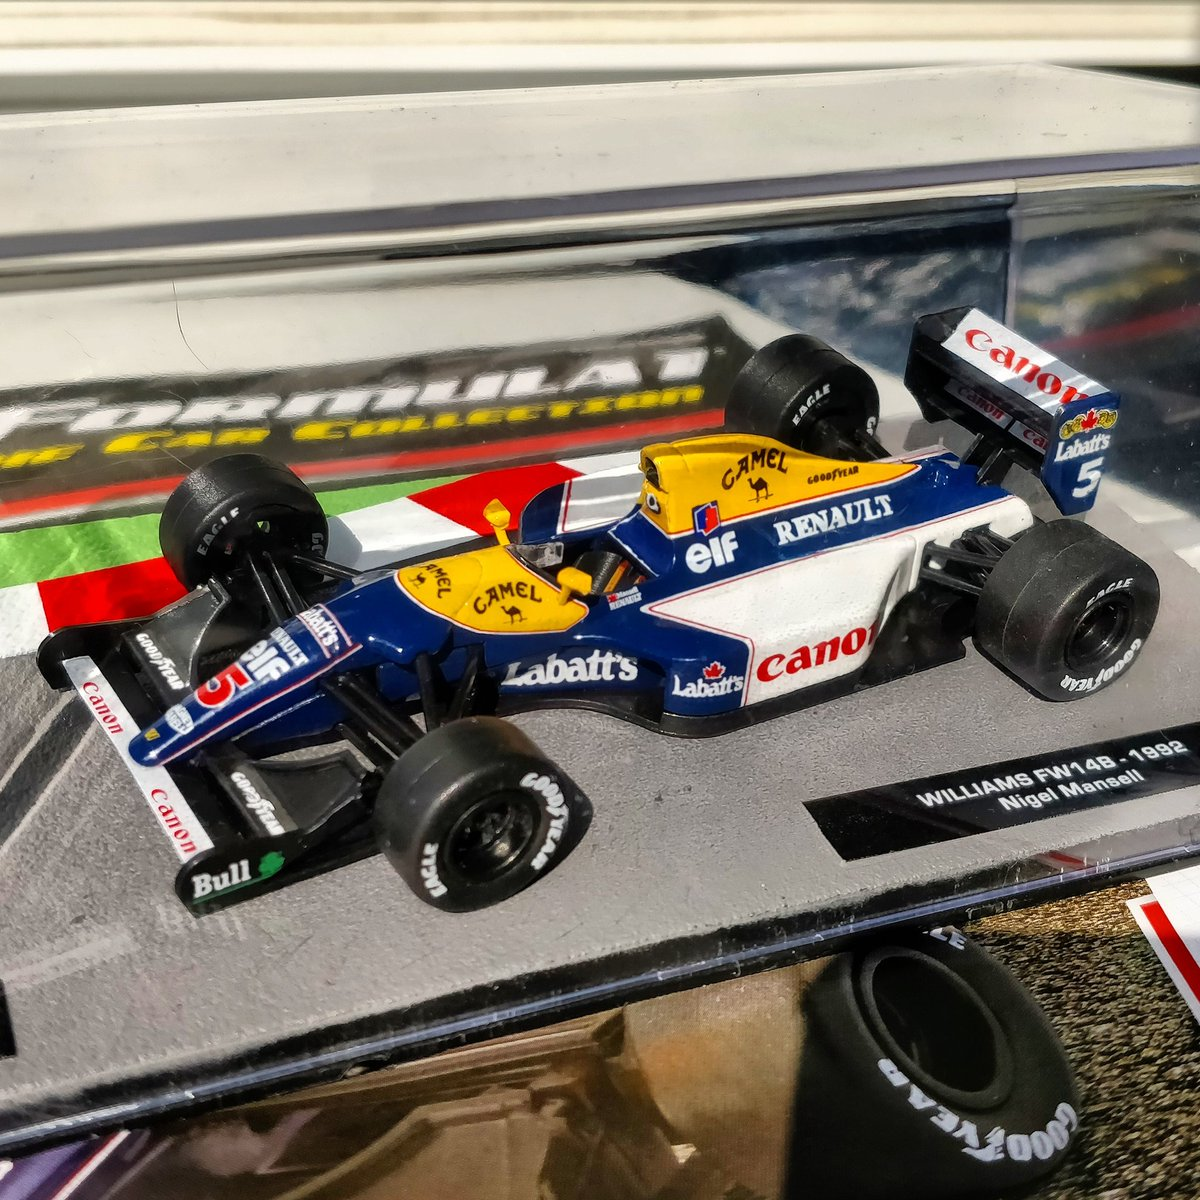 Great to have the legendary #Red5 Williams FW14B in my collection. Hands down the most beautiful #F1 livery ever. #WilliamsF1 <br>http://pic.twitter.com/mu1PQYuBZl